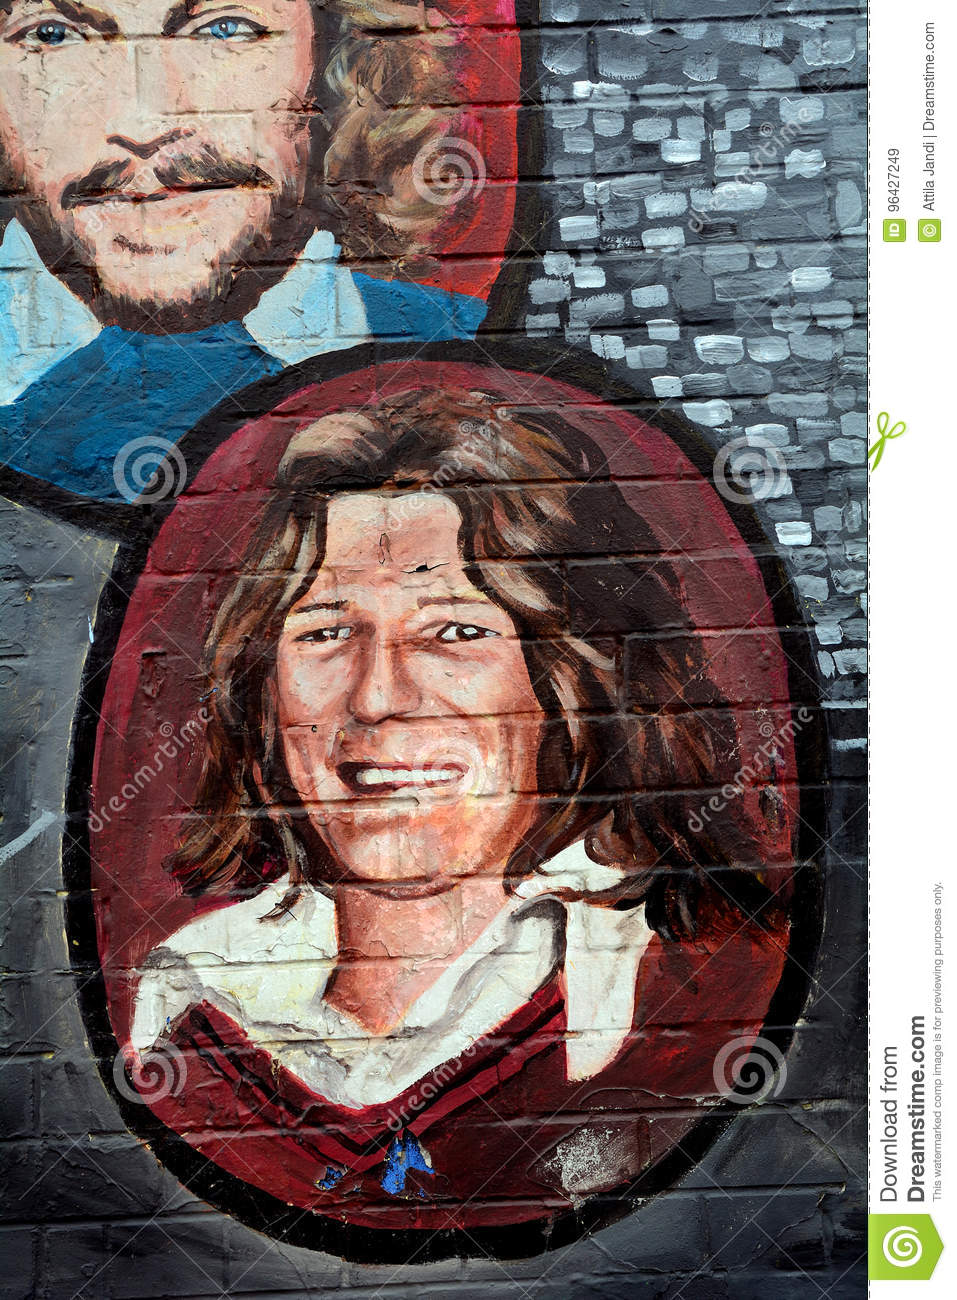 Mural with Bobby Sands, Belfast, Northern Ireland